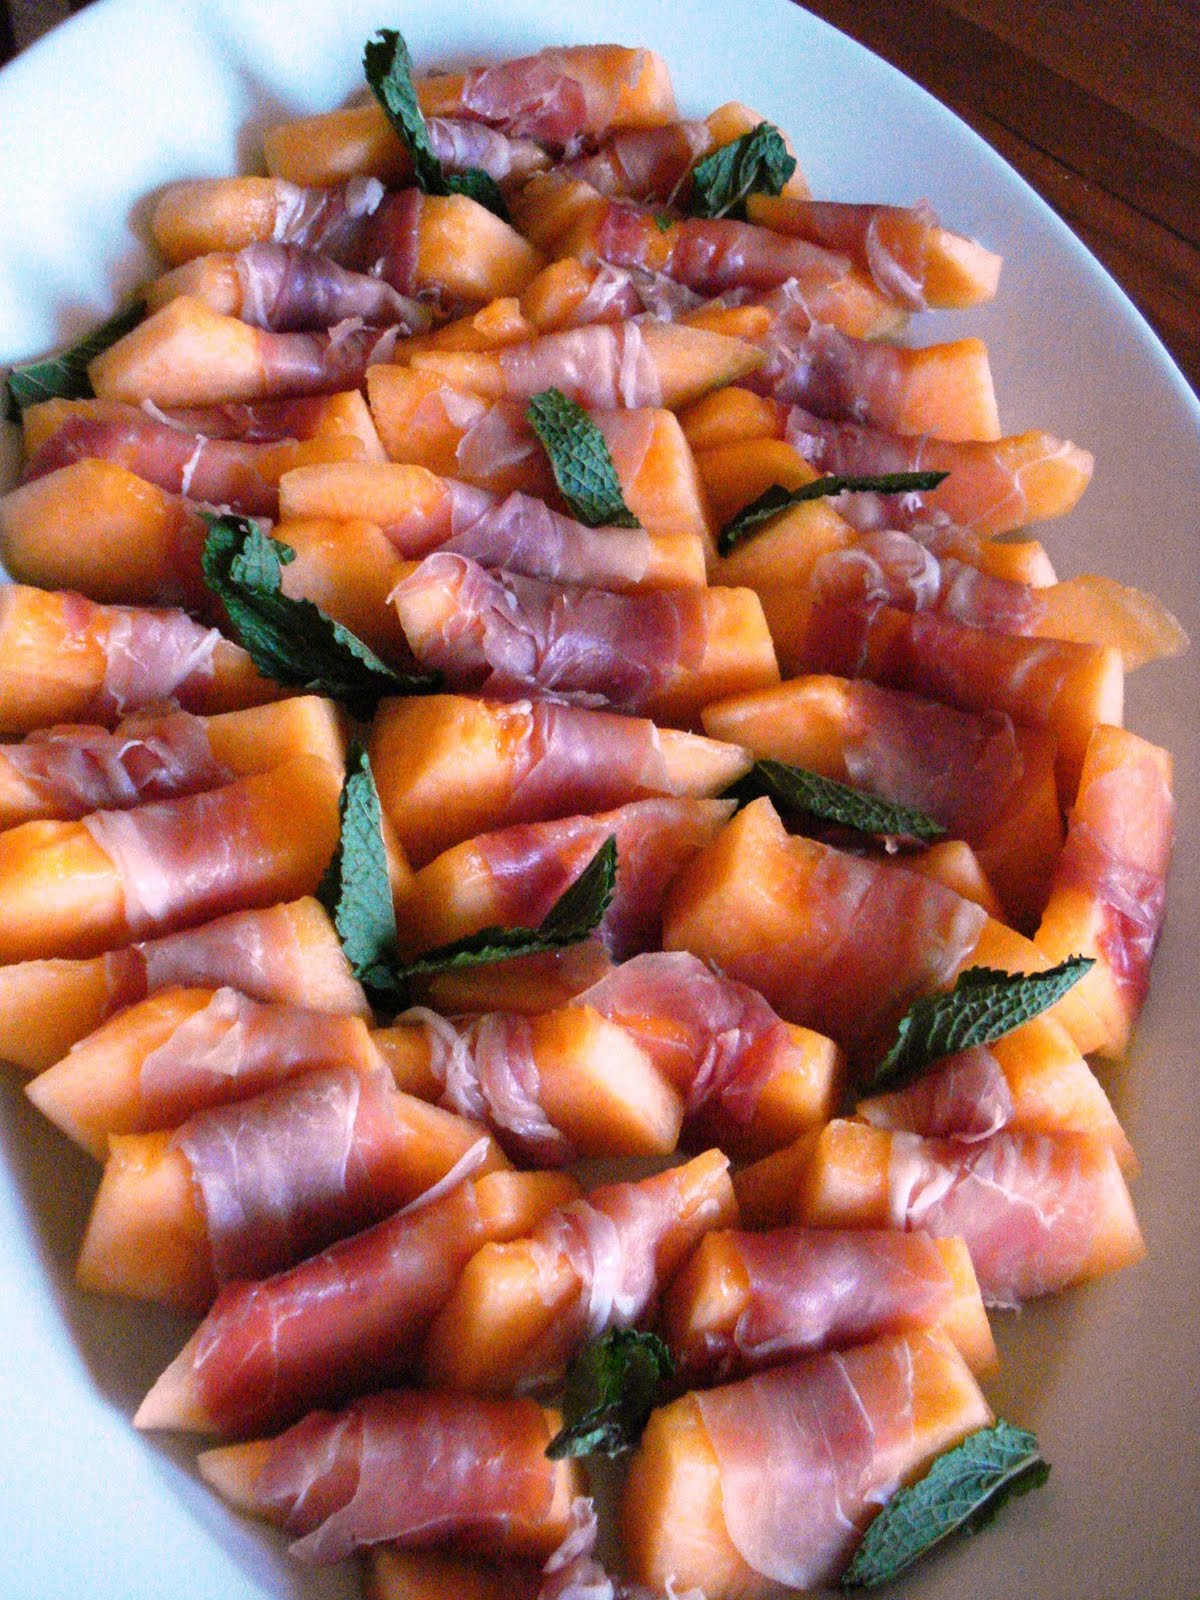 Cantaloupe melon wrapped in prosciutto with fresh mint